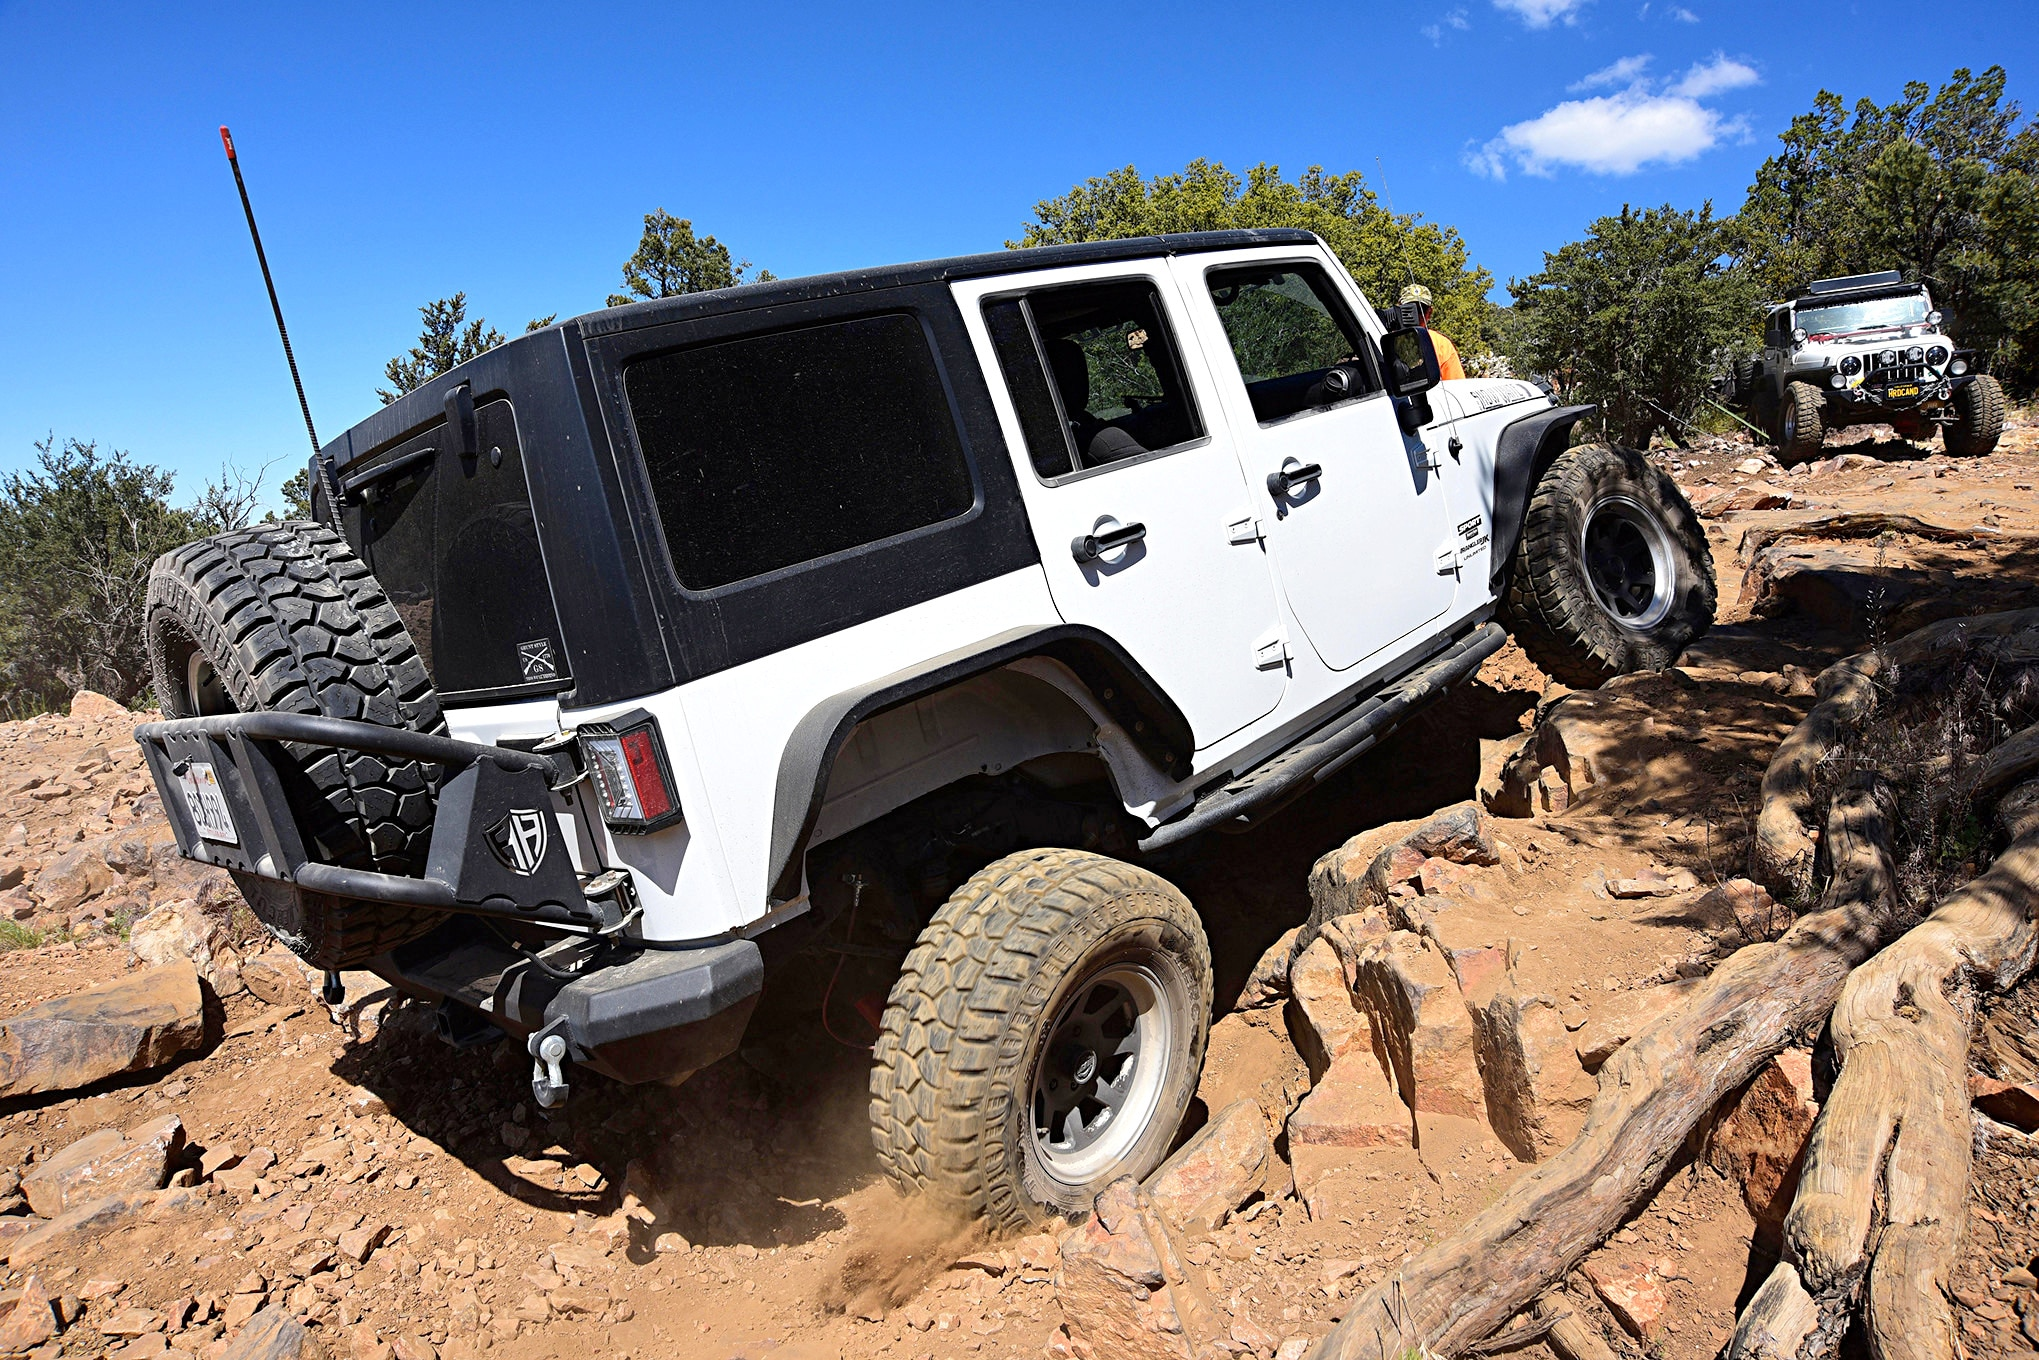 034 jeep event big bear forest fest 2019 inland empire